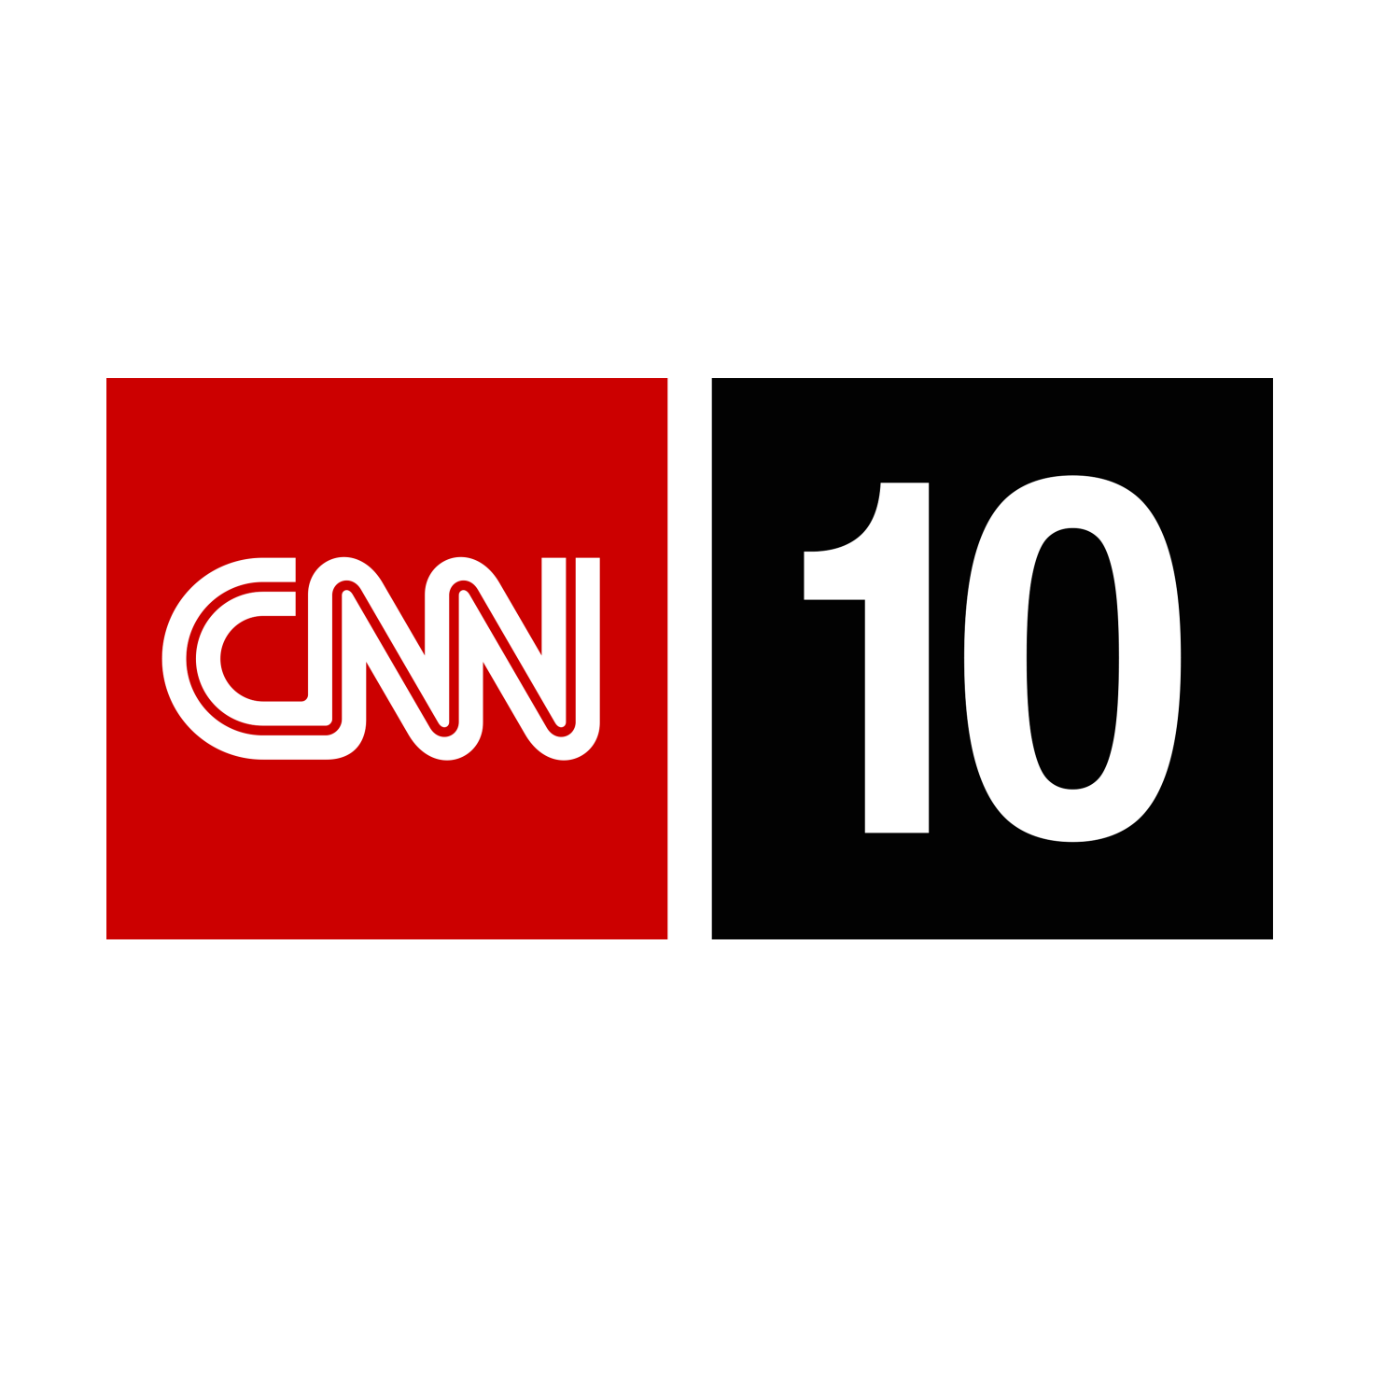 CNN Student News - May 20, 2013